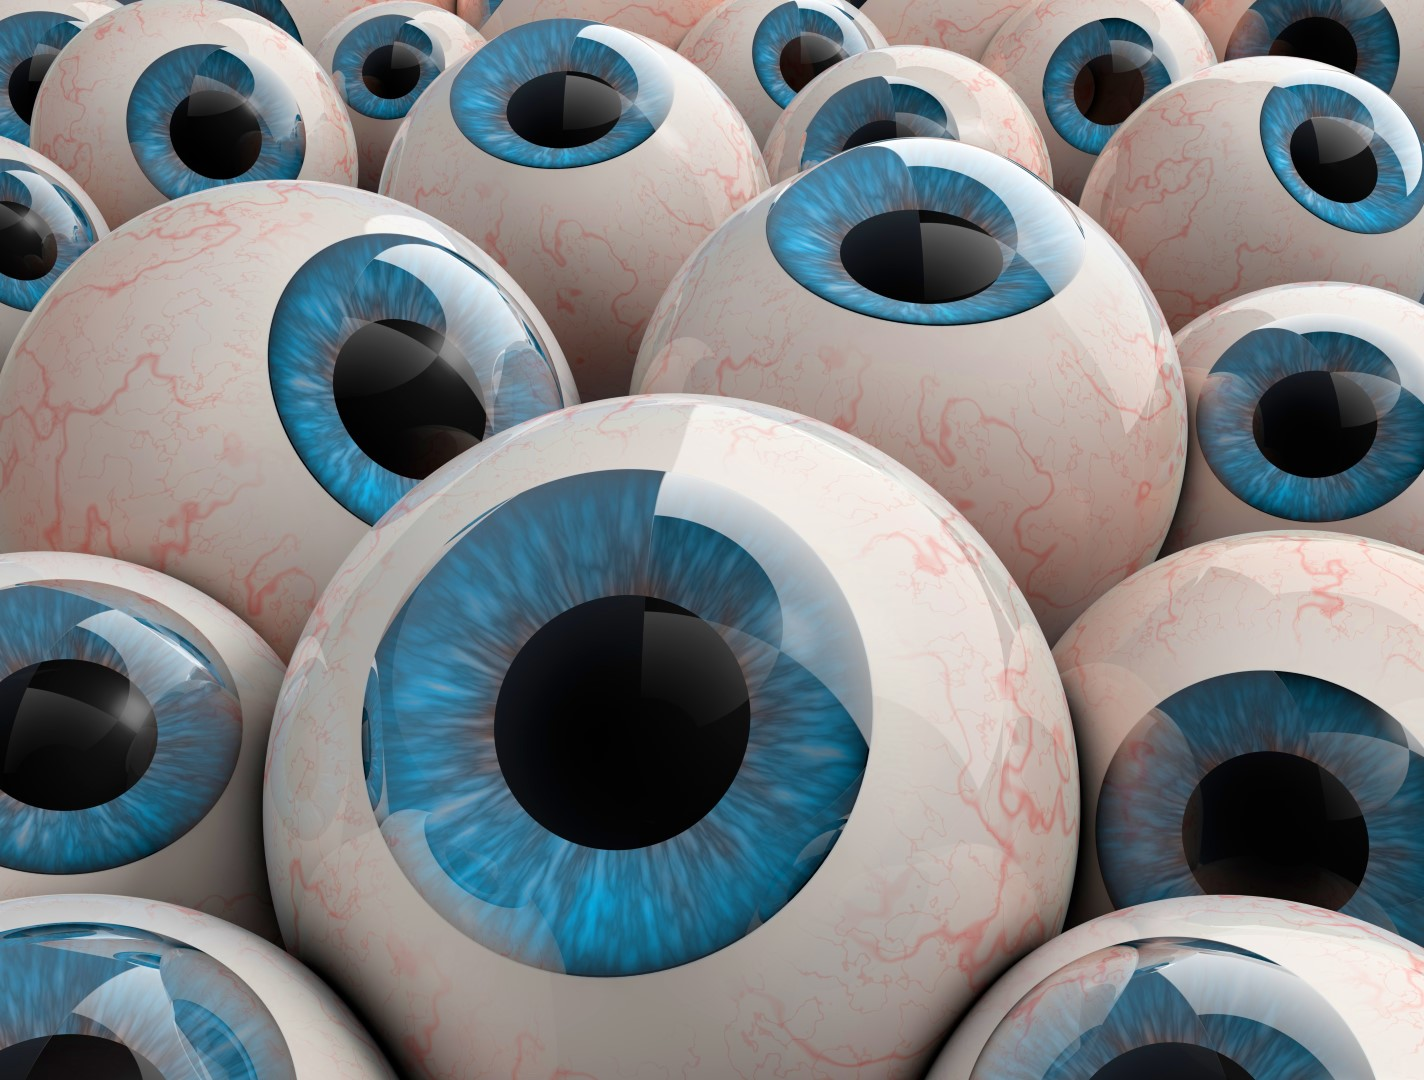 Eyeballs-Large.jpg